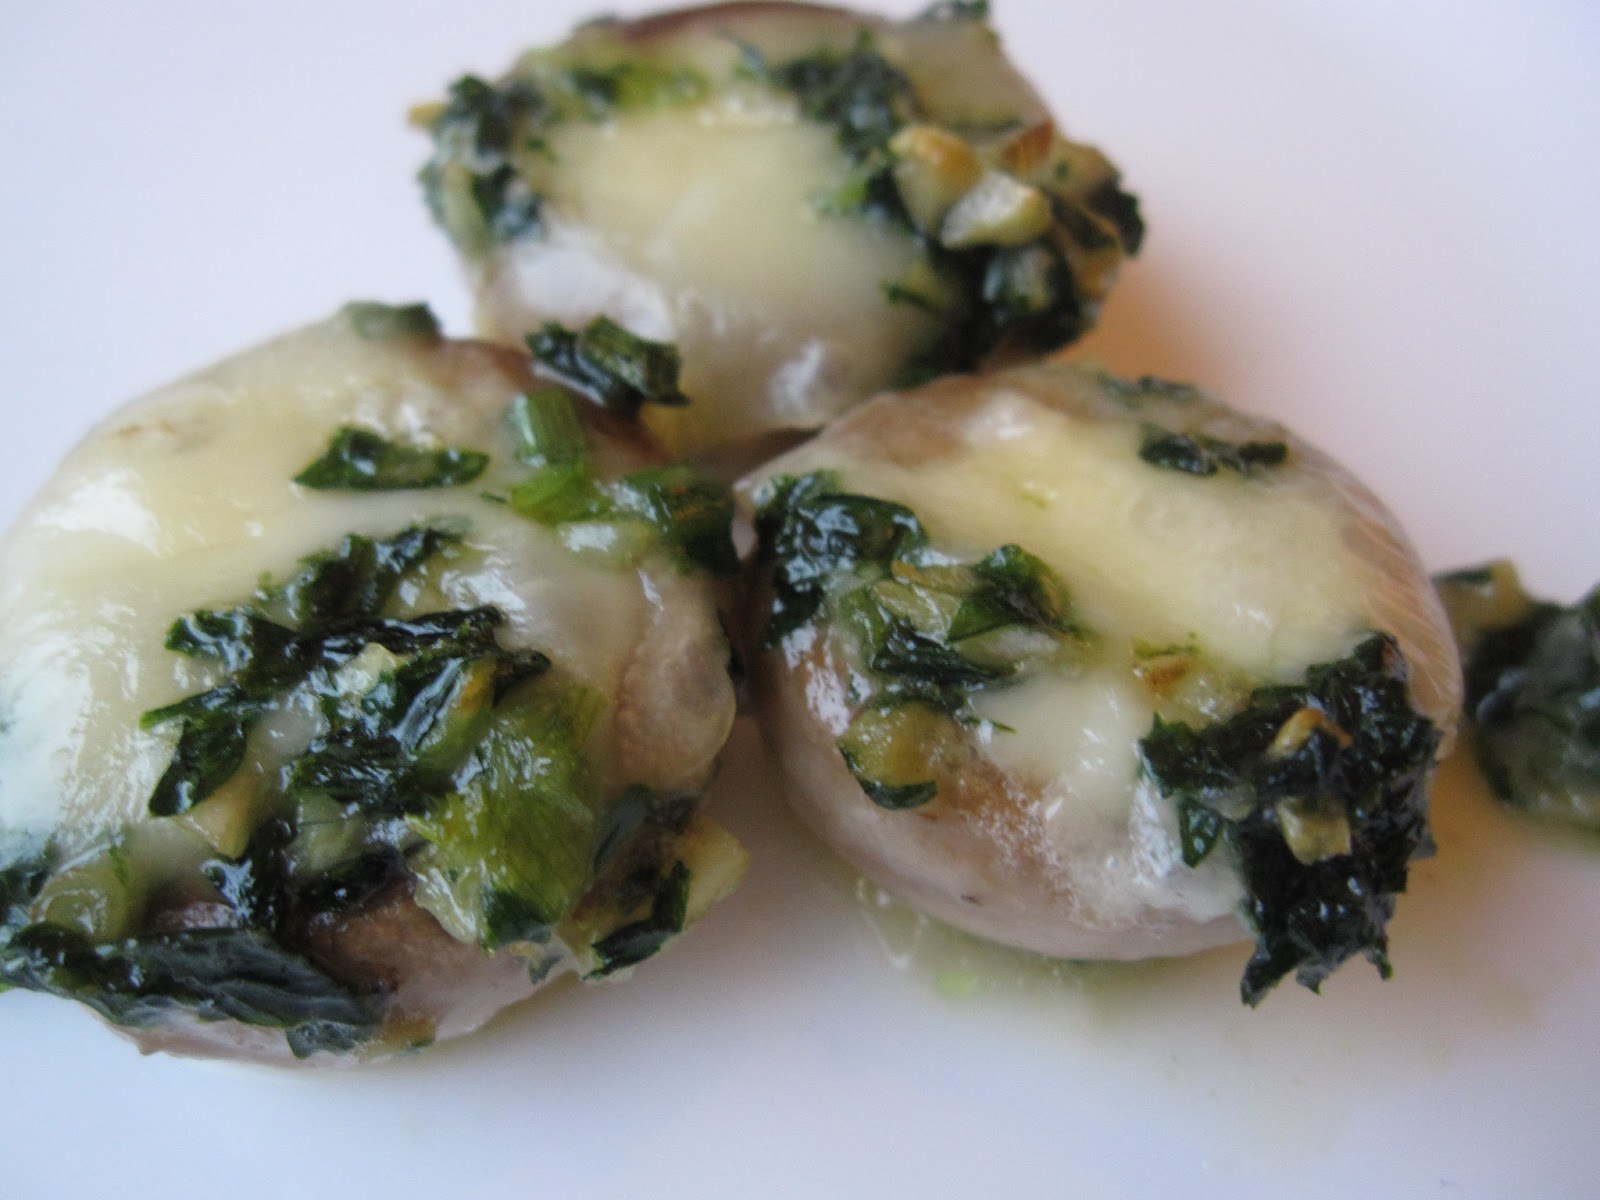 Fanksgiving: Mushrooms stuffed with Brie